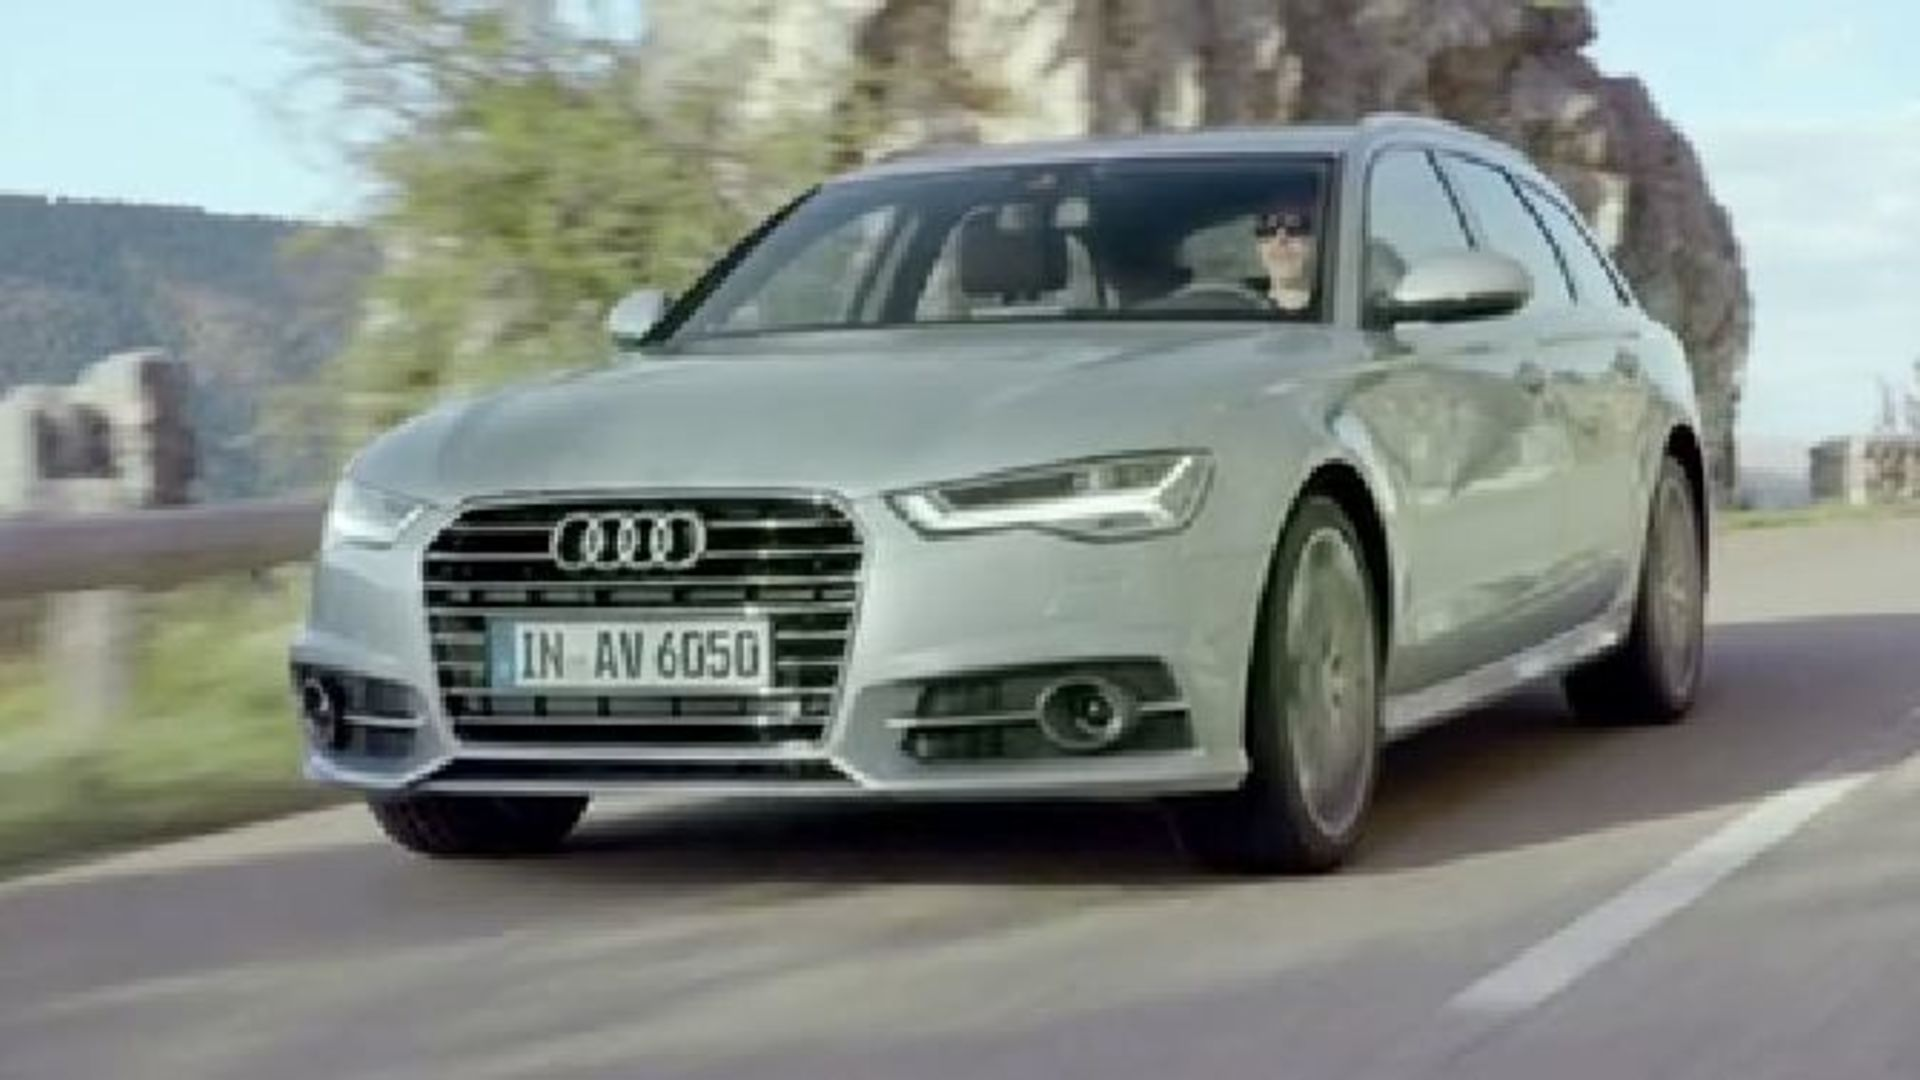 The new Audi A6 Avant ultra